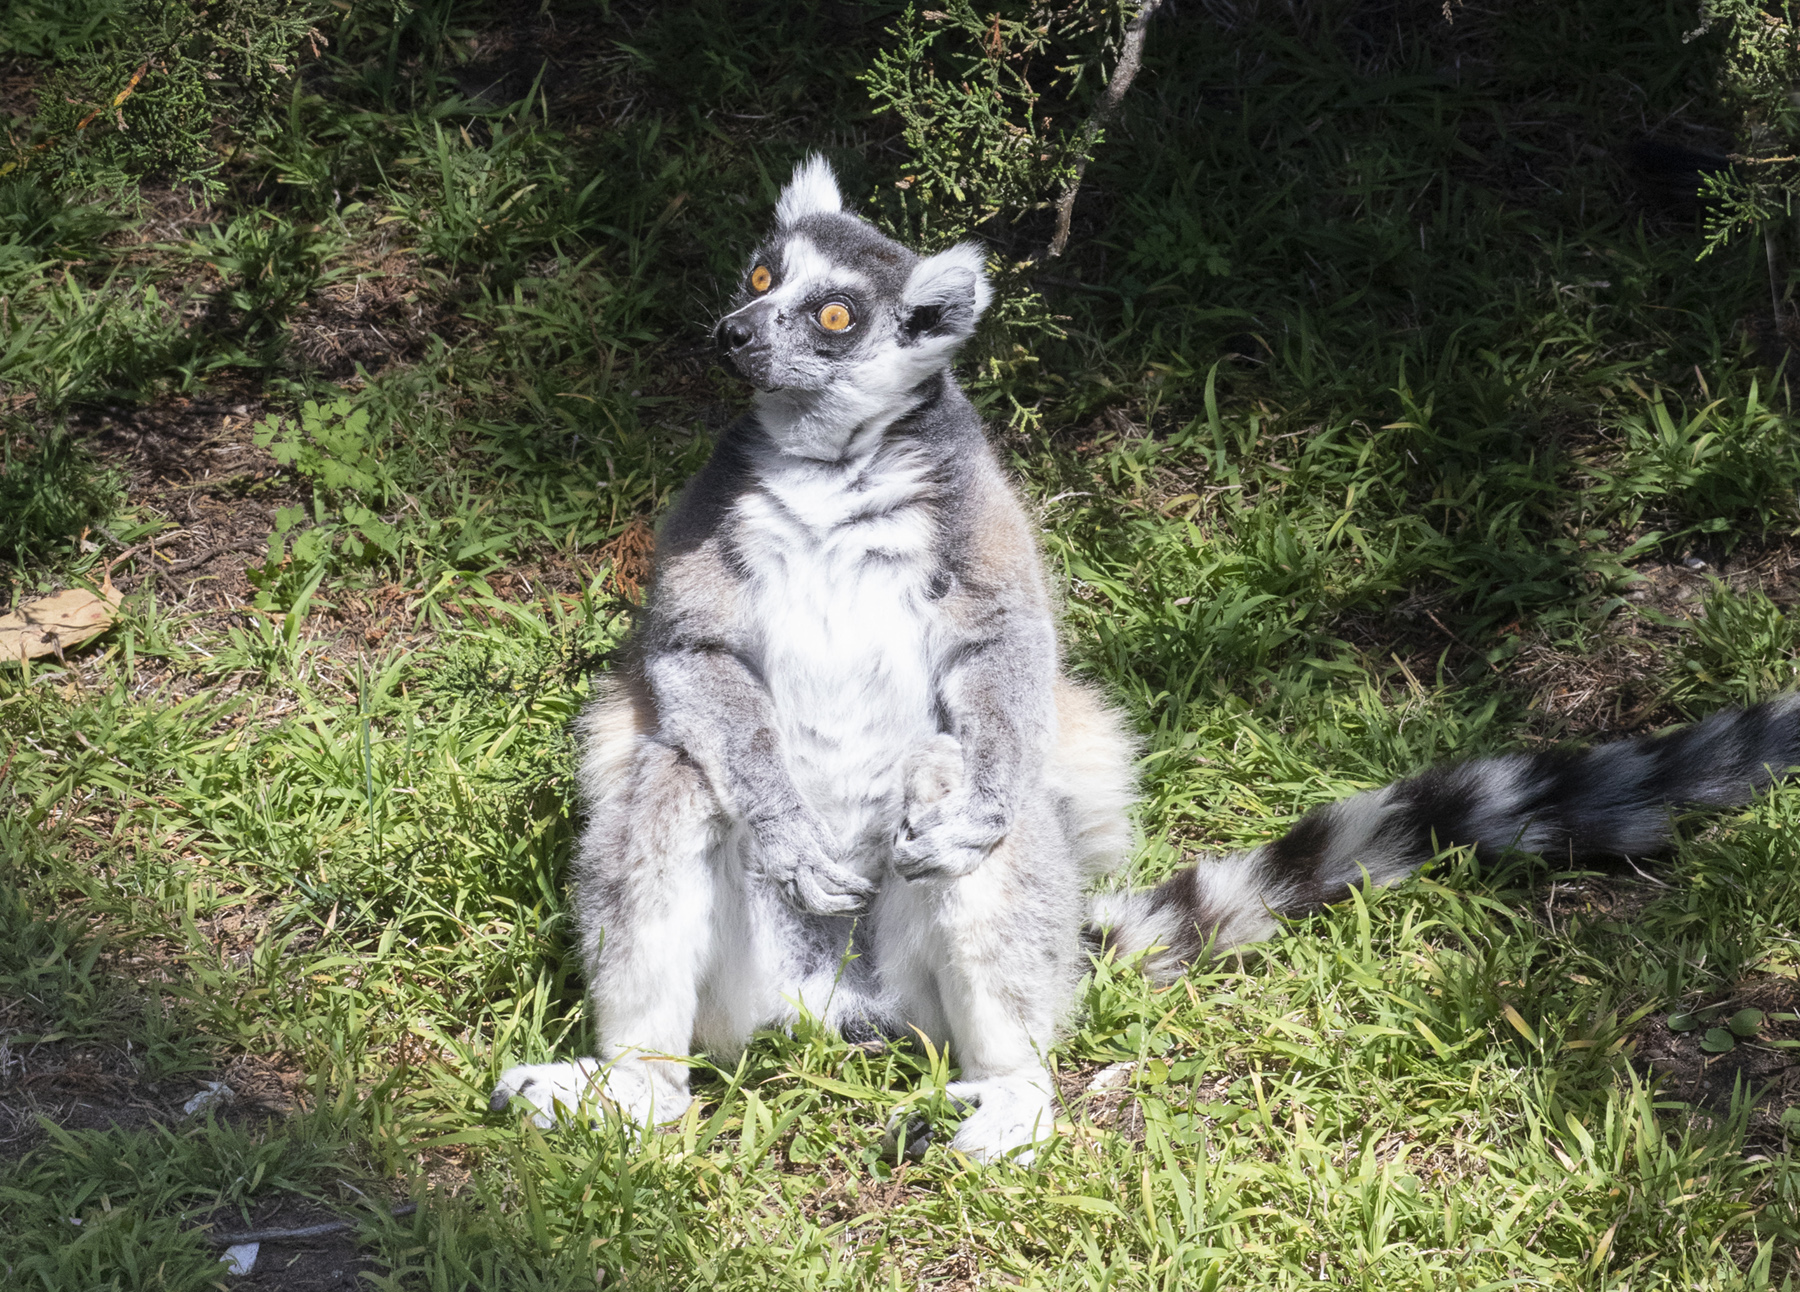 Lemur stolen from San Francisco zoo found police have suspect – Fox News